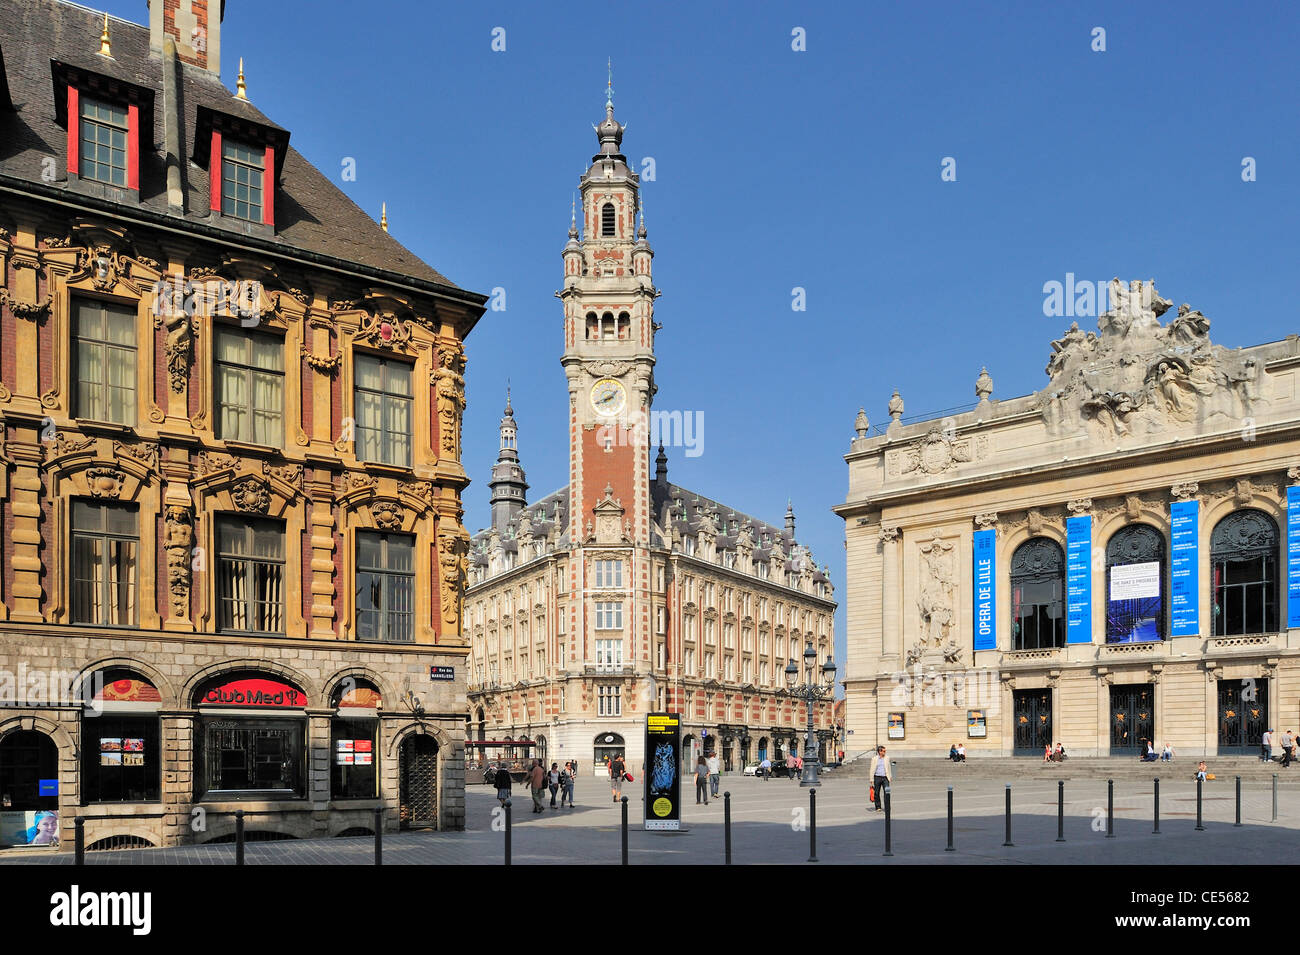 Bell tower of Chamber of Commerce and the Opéra de Lille at the Place du Théatre, Lille, France - Stock Image